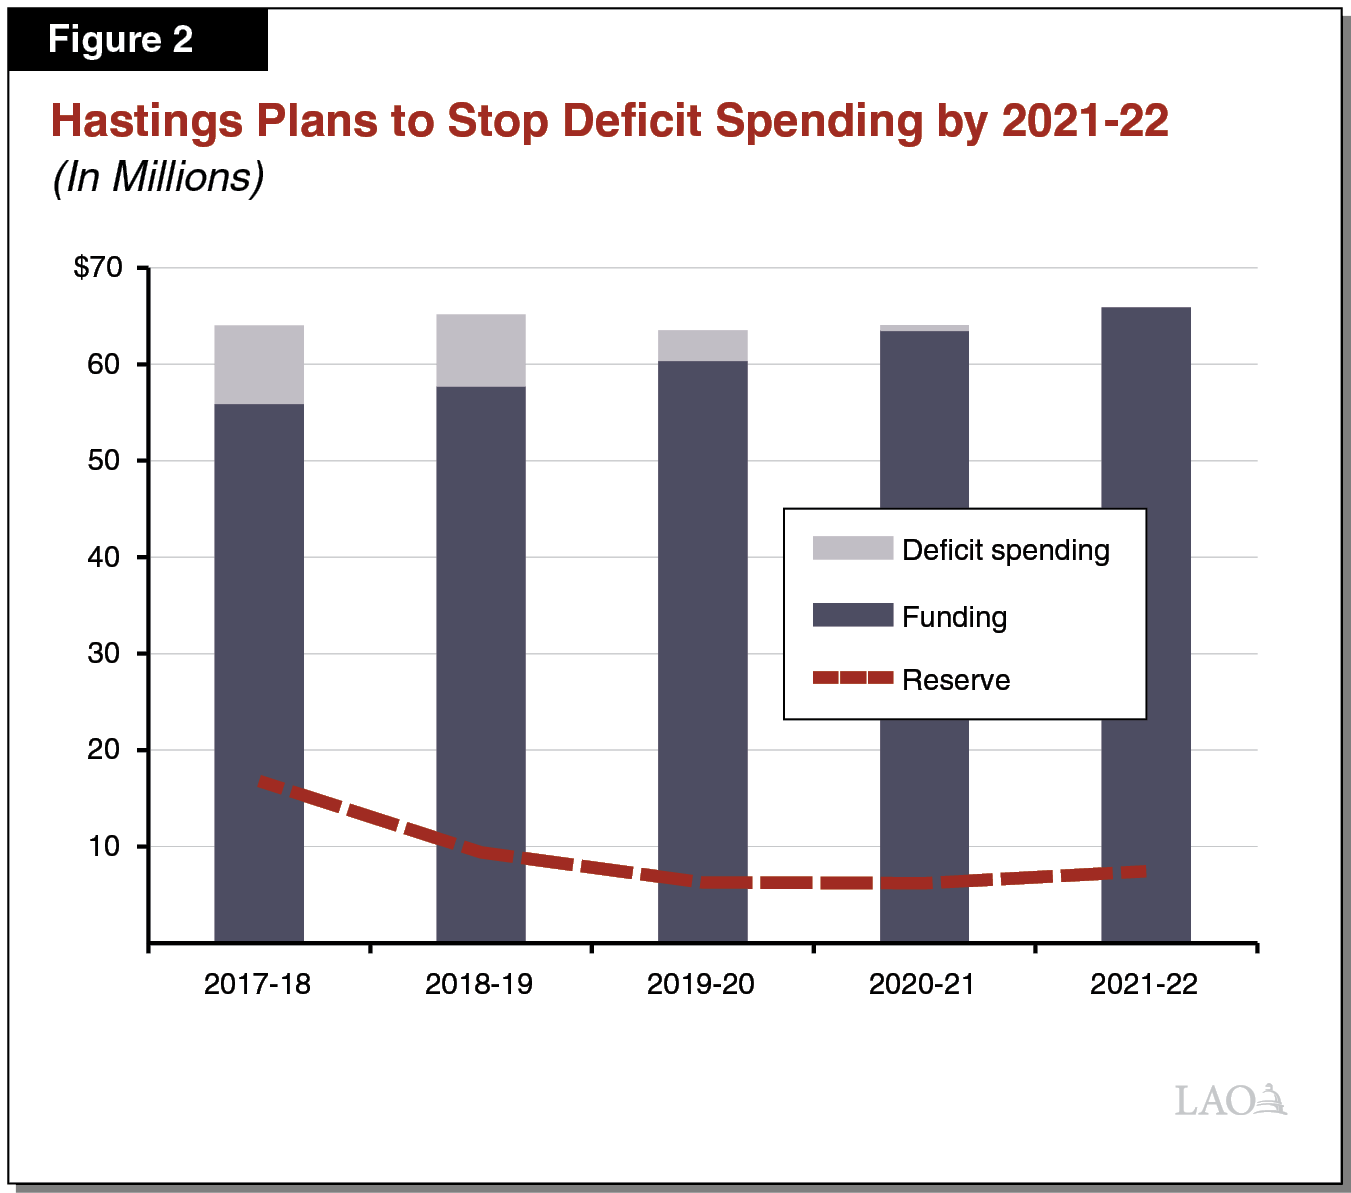 Figure 2 - Hastings Plans to Stop Deficit Spending by 2021-22